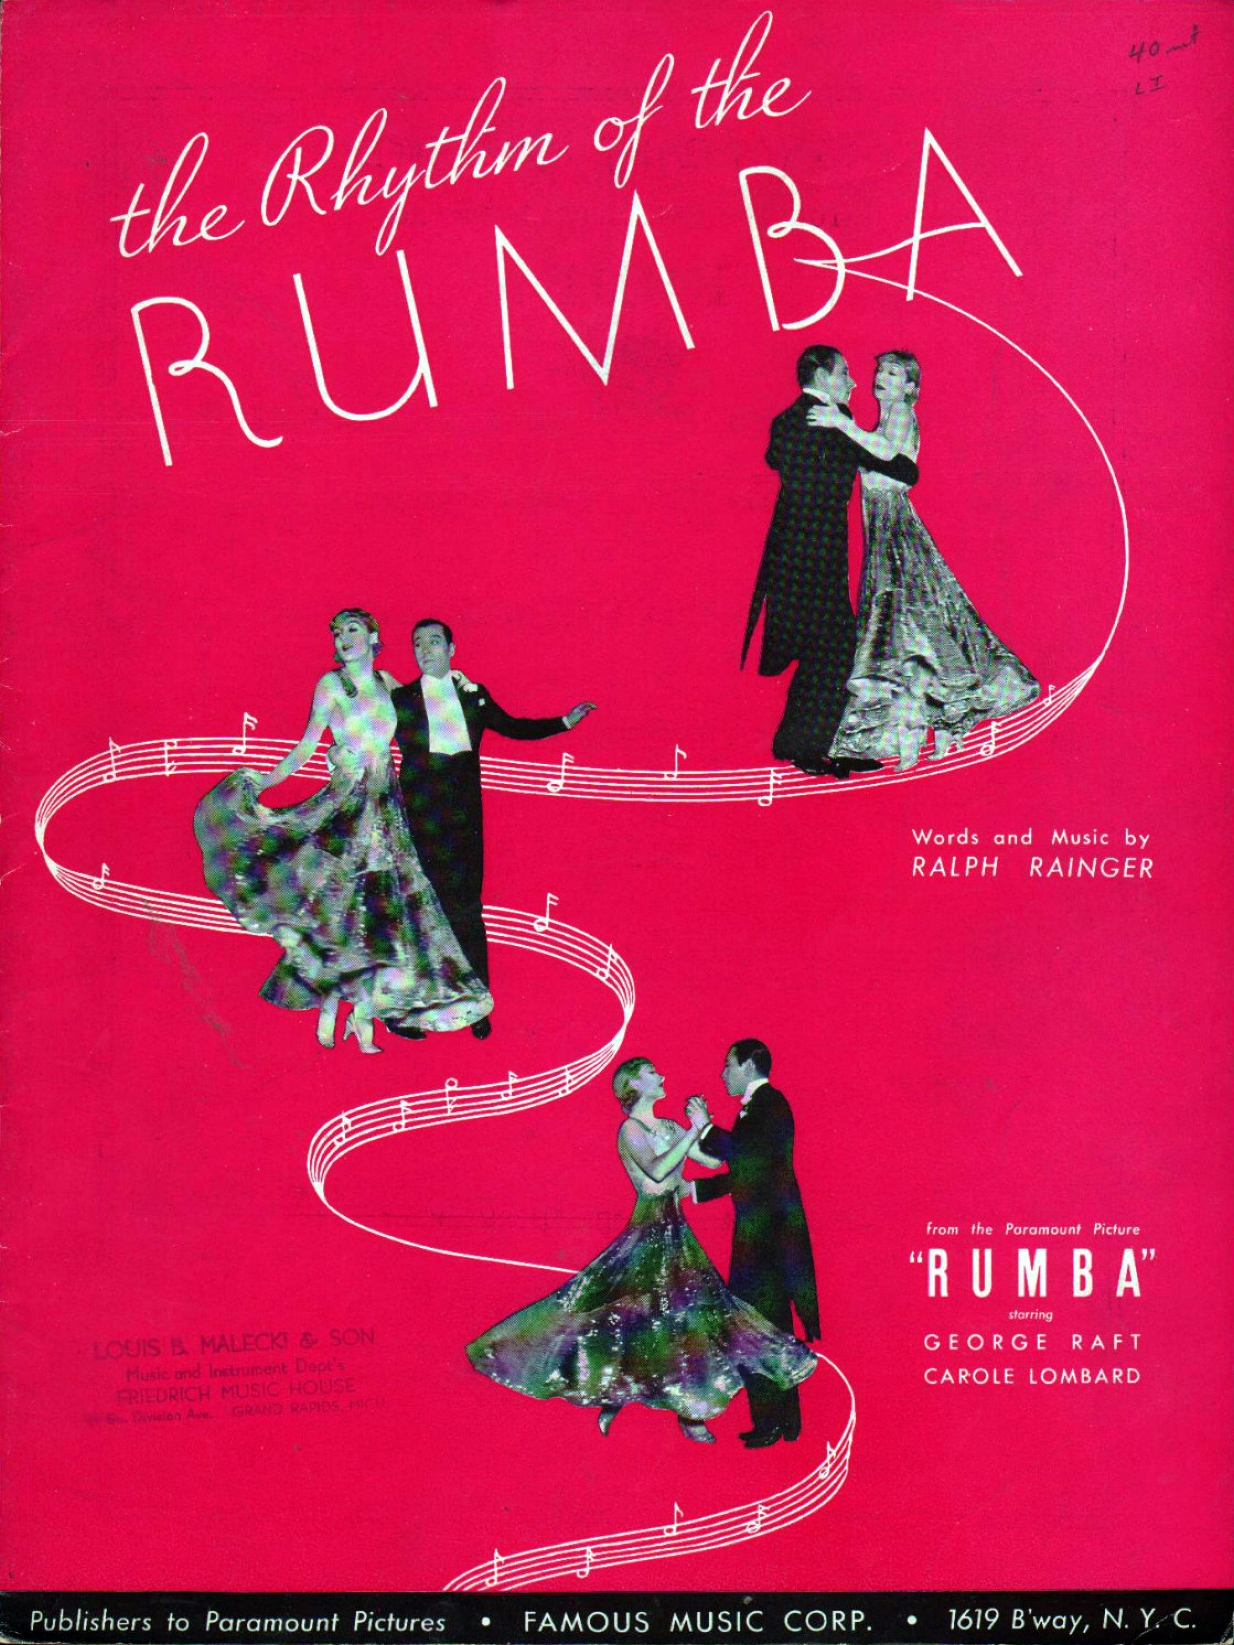 carole lombard rumba the rhythm of the rumba 00a